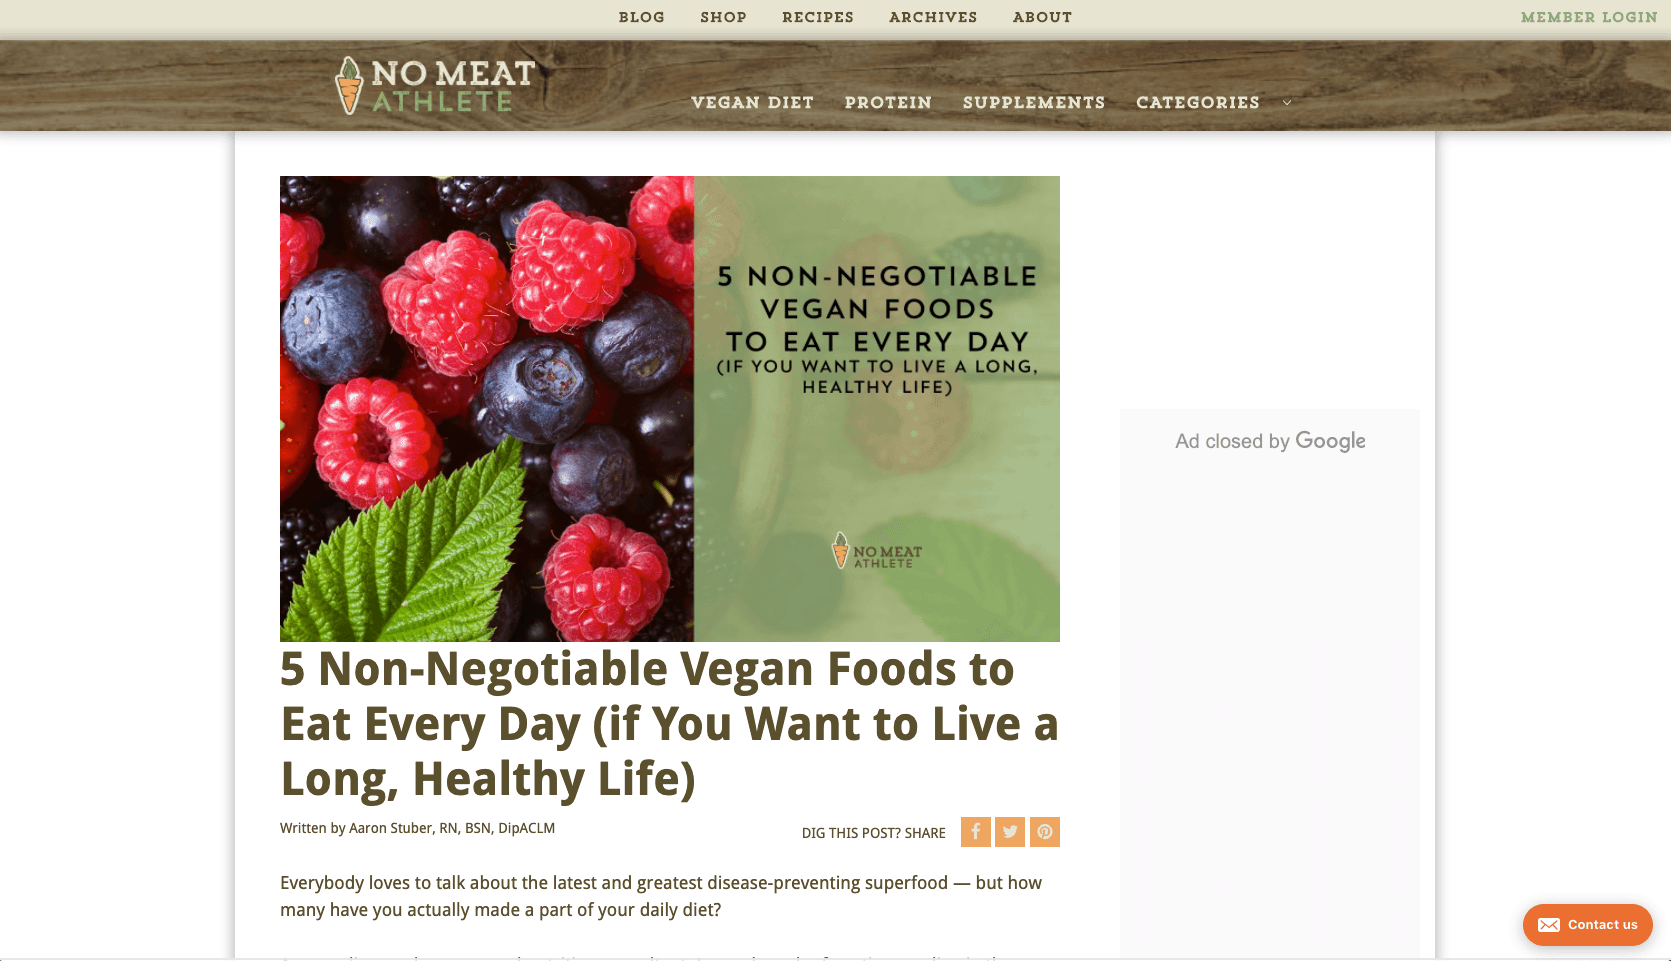 Non Negotiable Vegan Foods to Eat Every Day if You Want to Live a Long Healthy Life